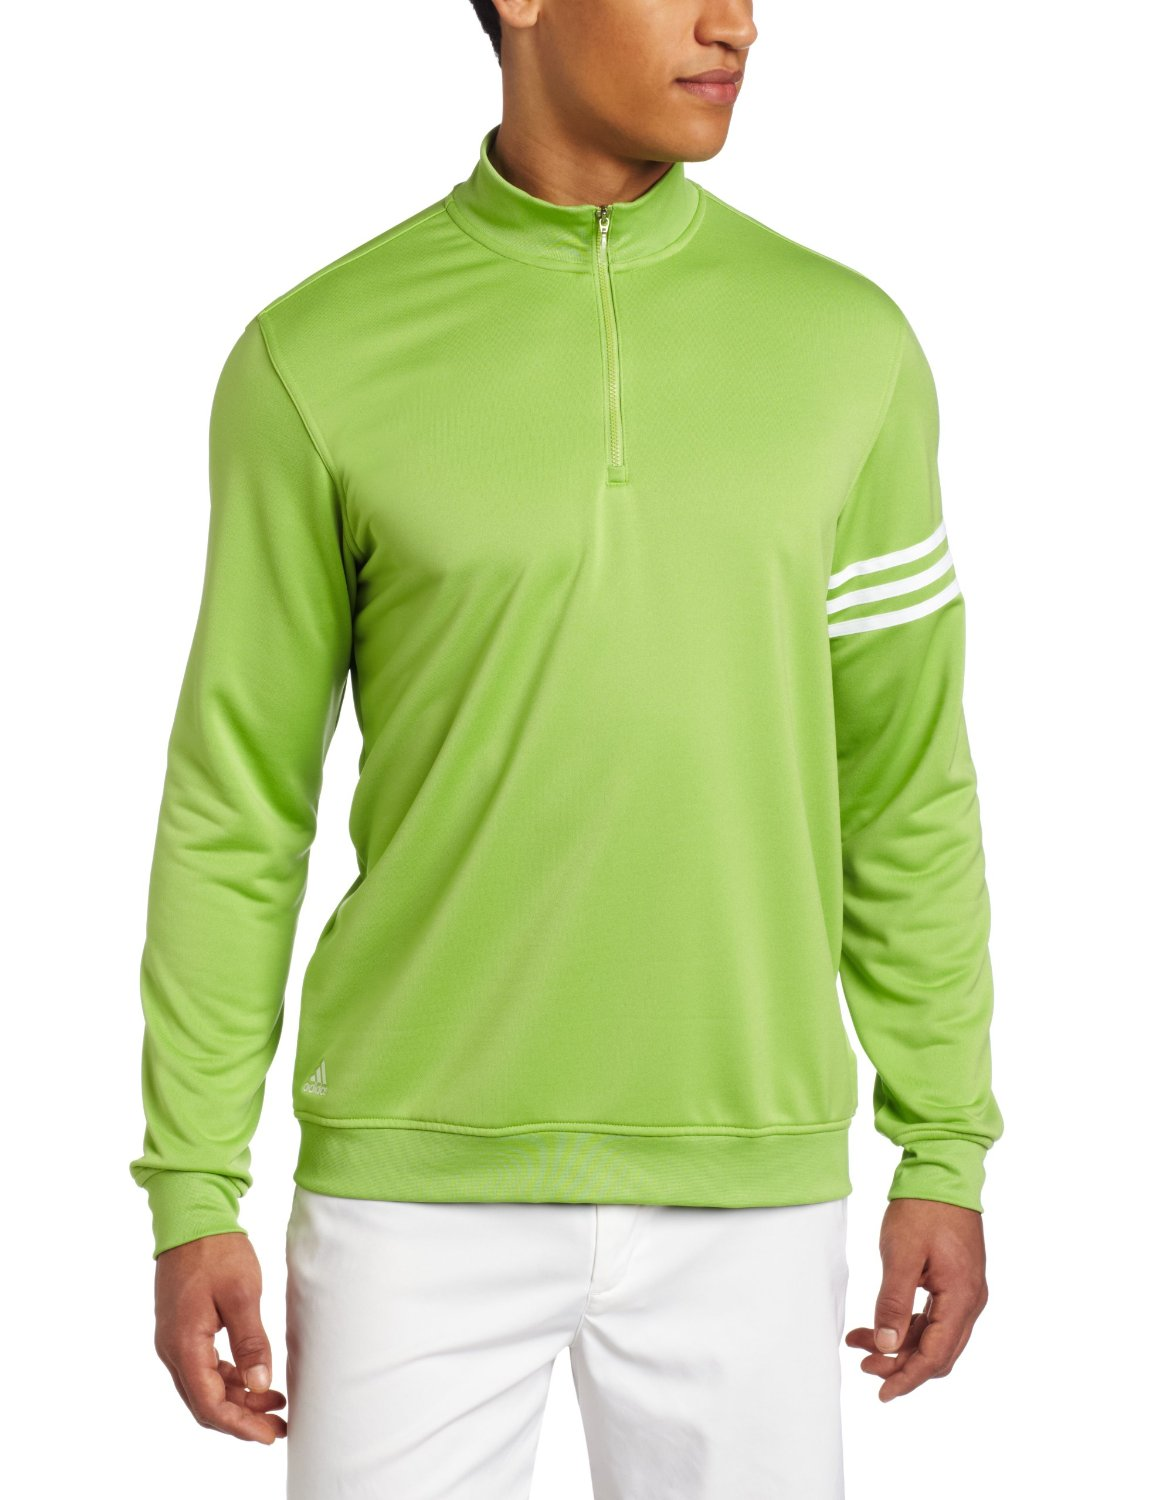 Mens Adidas Climalite 3-Stripes Golf Pullovers